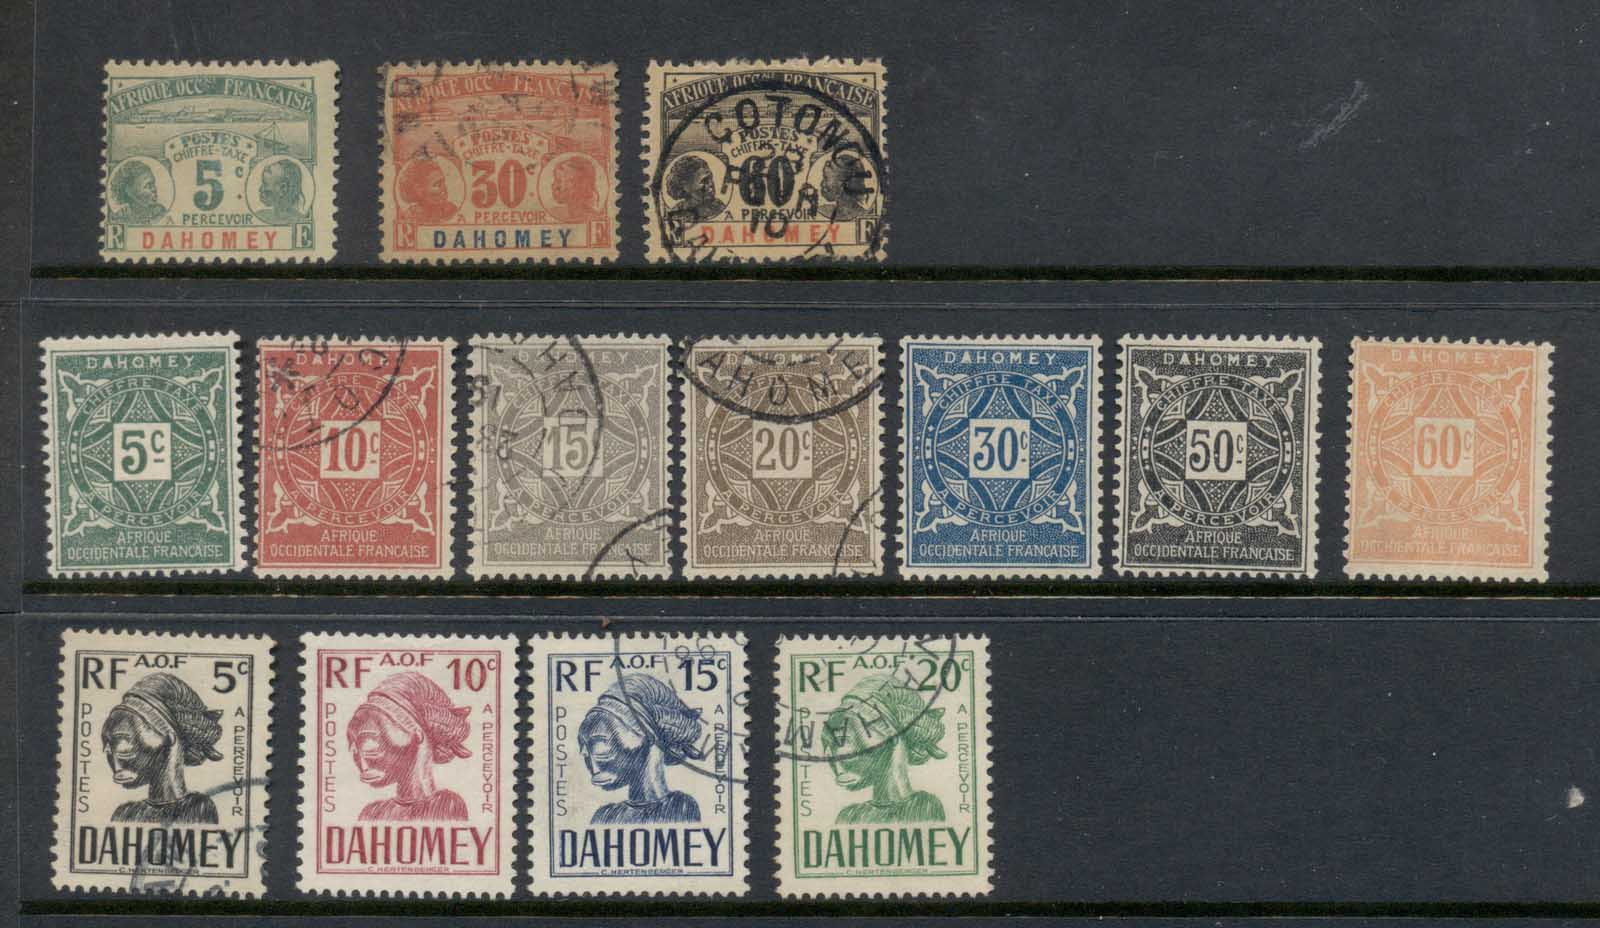 Dahomey 1906 on Postage Dues Asst FU/MLH